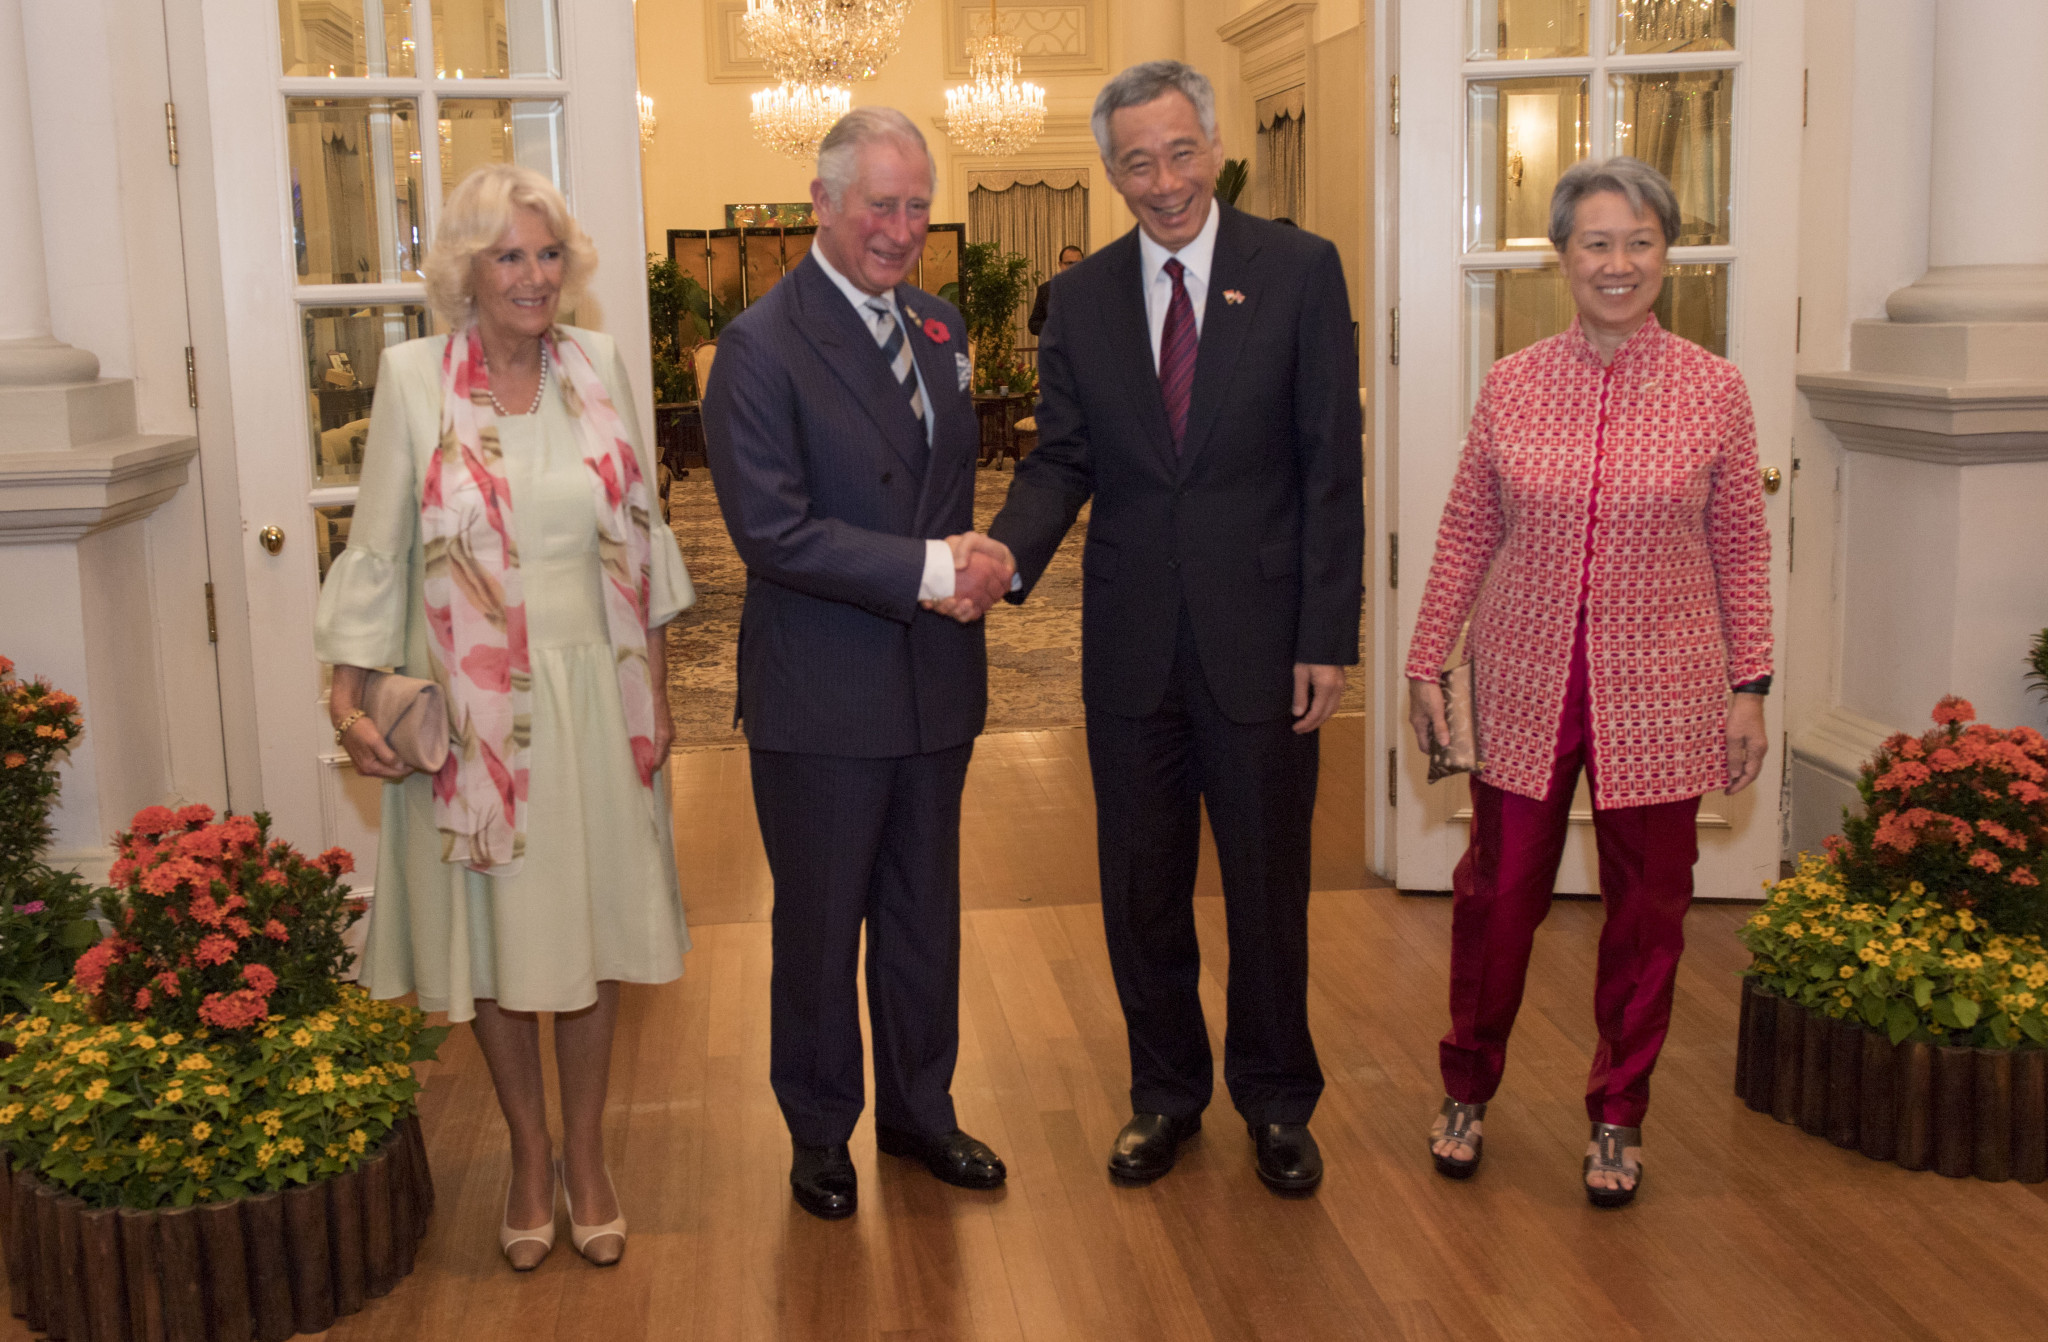 Prince Charles met with Singapore's Prime Minister Lee Hsien Loong.as part of his three day visit ©Getty Images